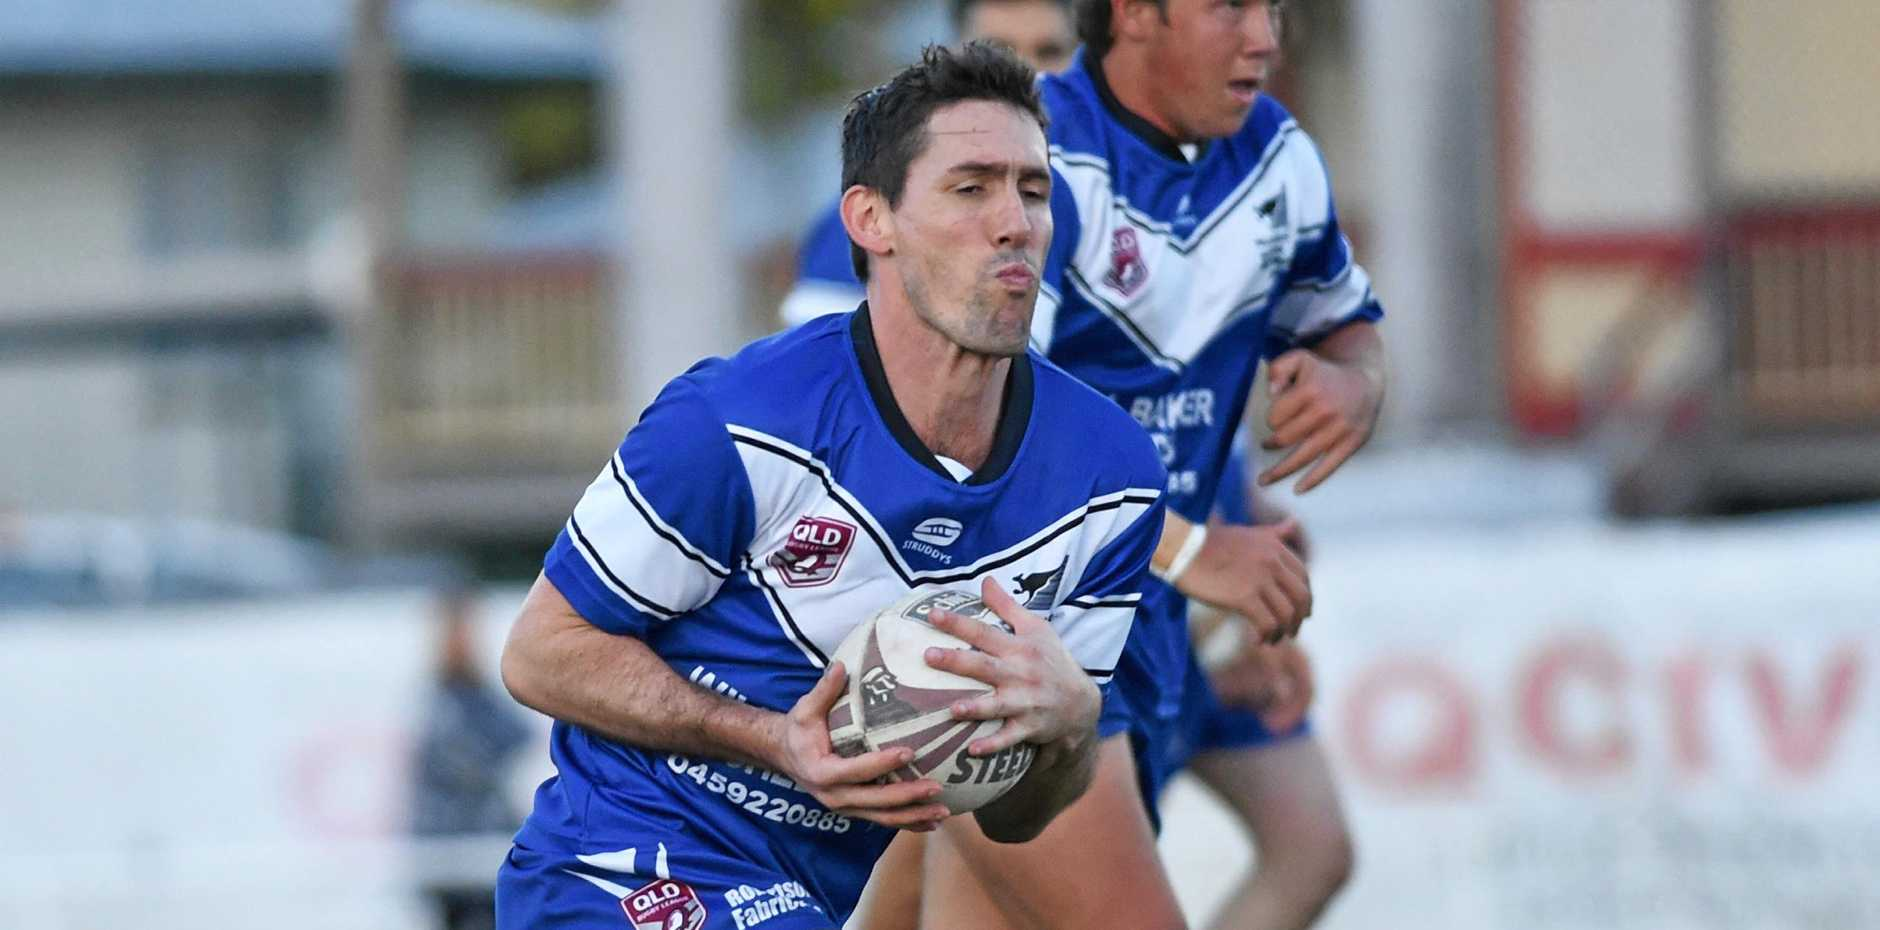 OFF AND RUNNING: Maryborough Wallaroos player Daniel Beattie in the match against the Hervey Bay Seagulls last week.